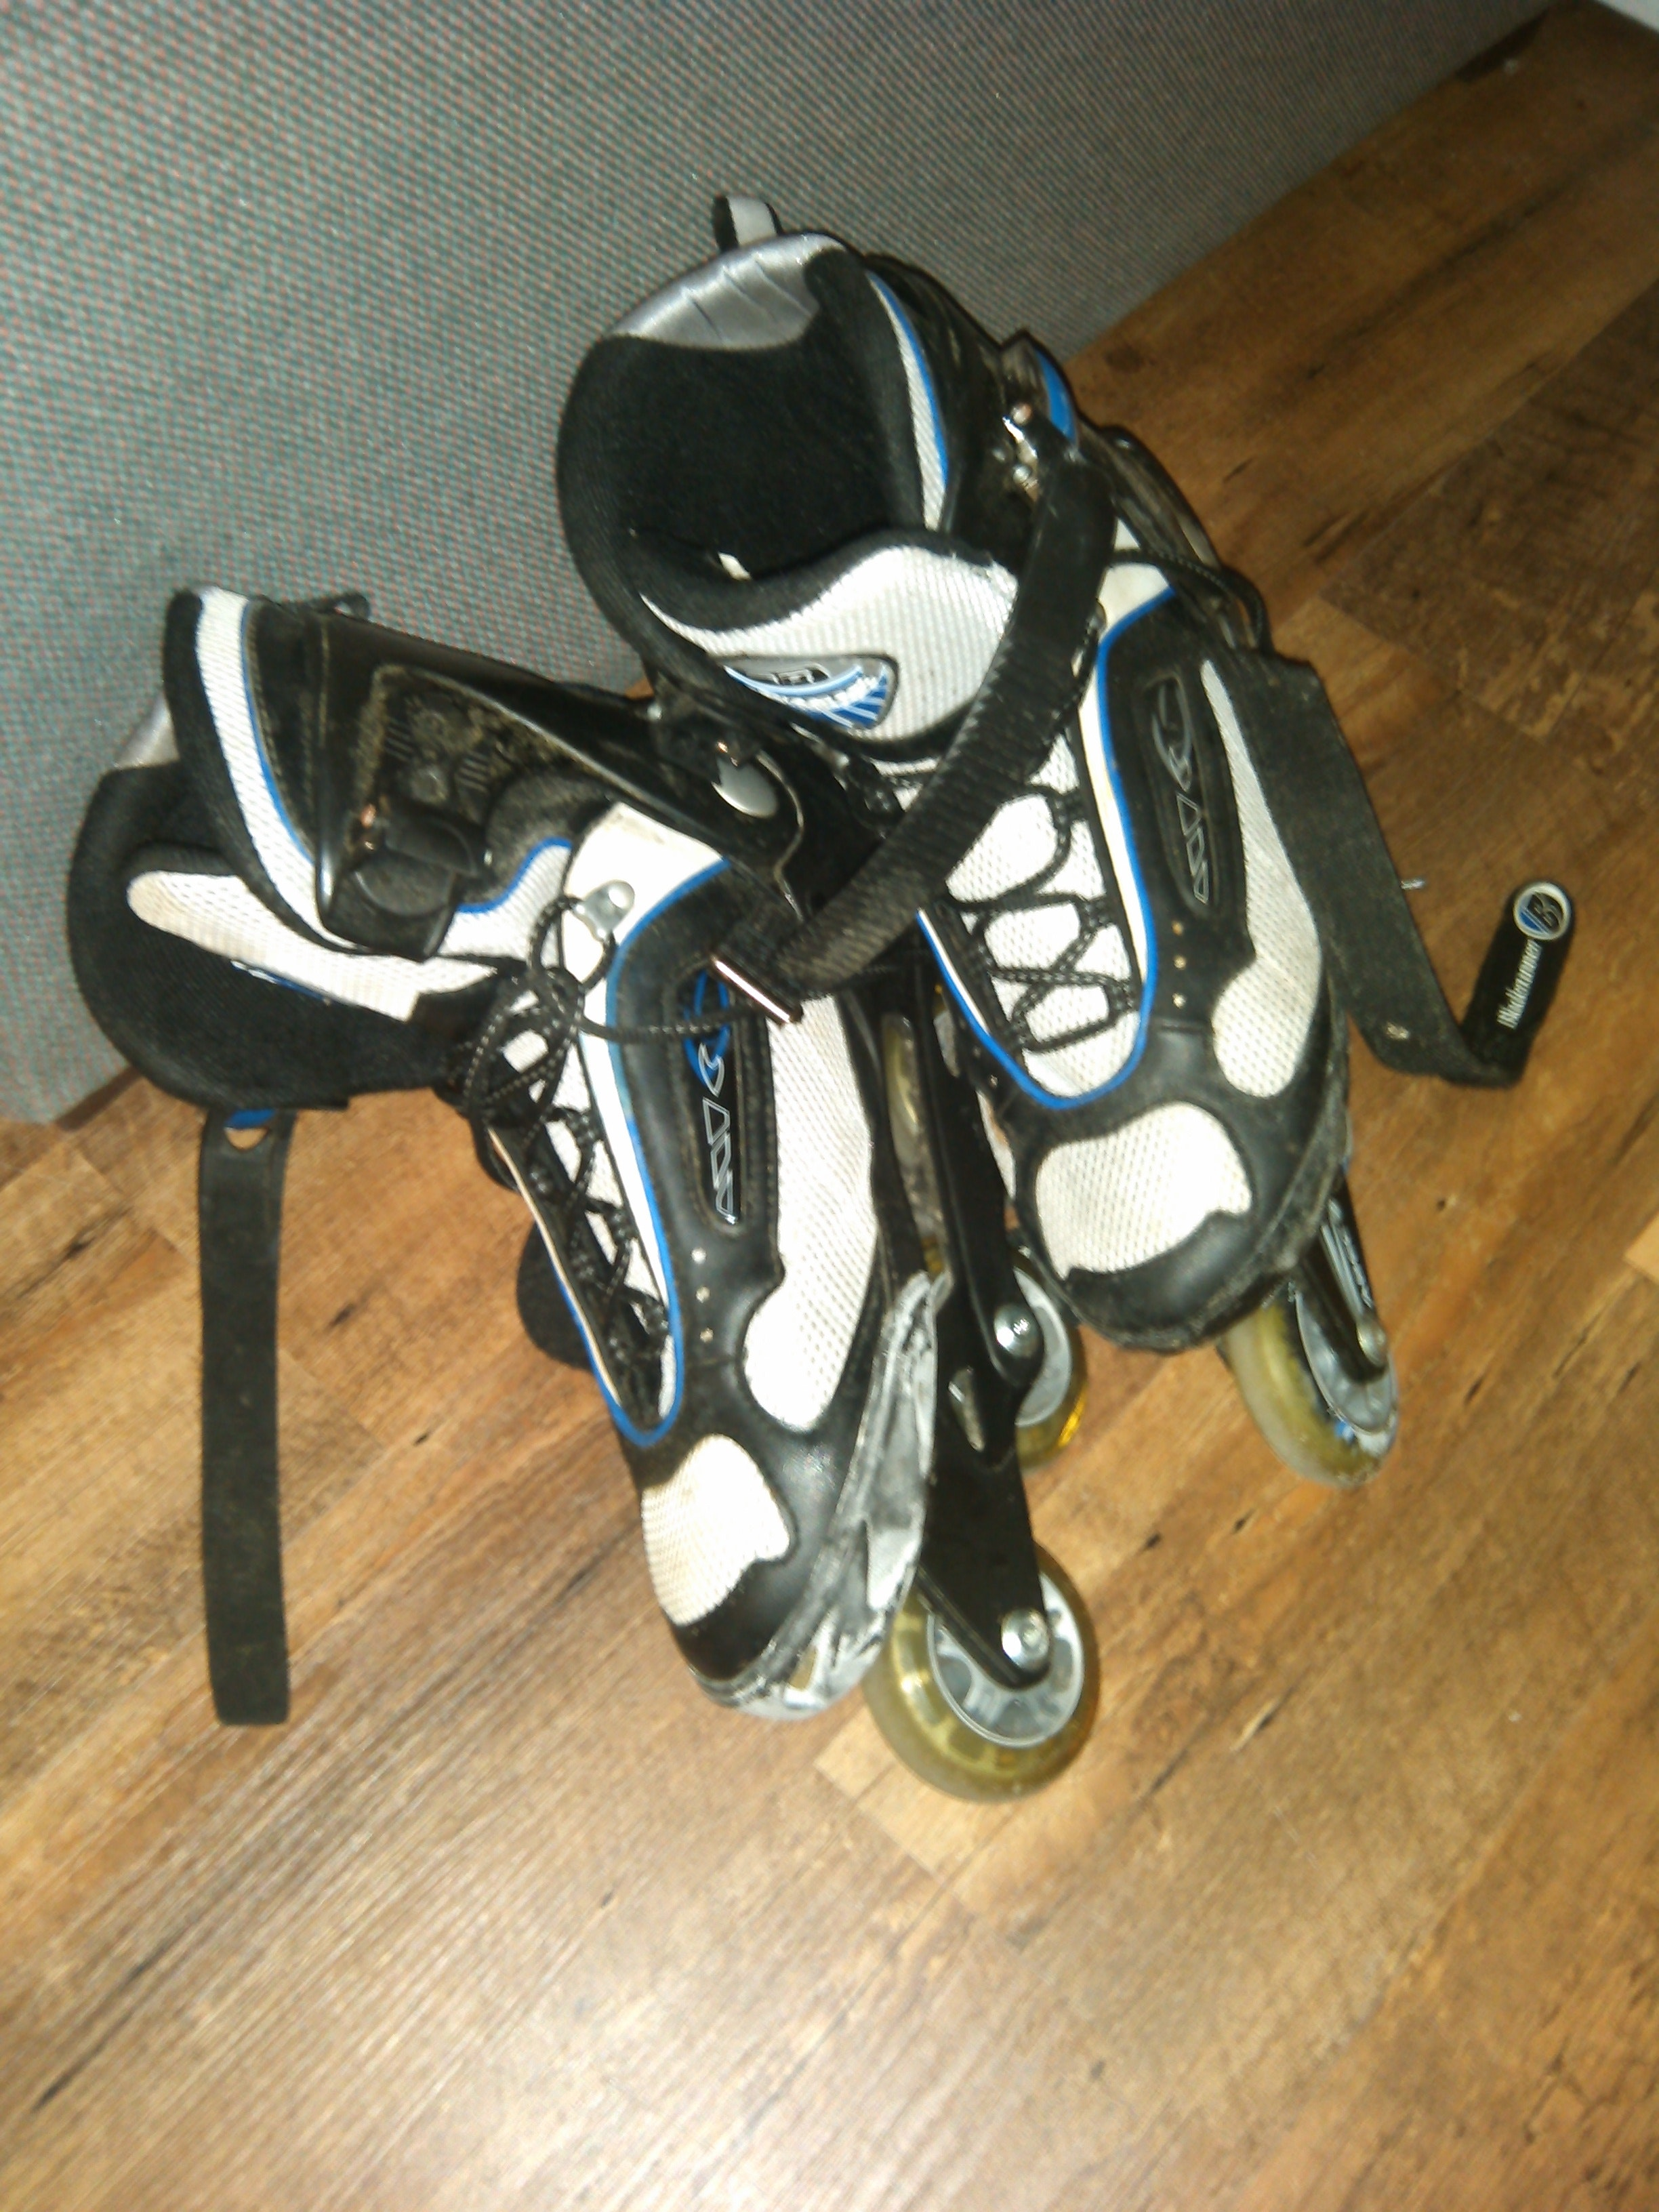 Iron Roller Skates Like On The Bottom Of Your Shoe